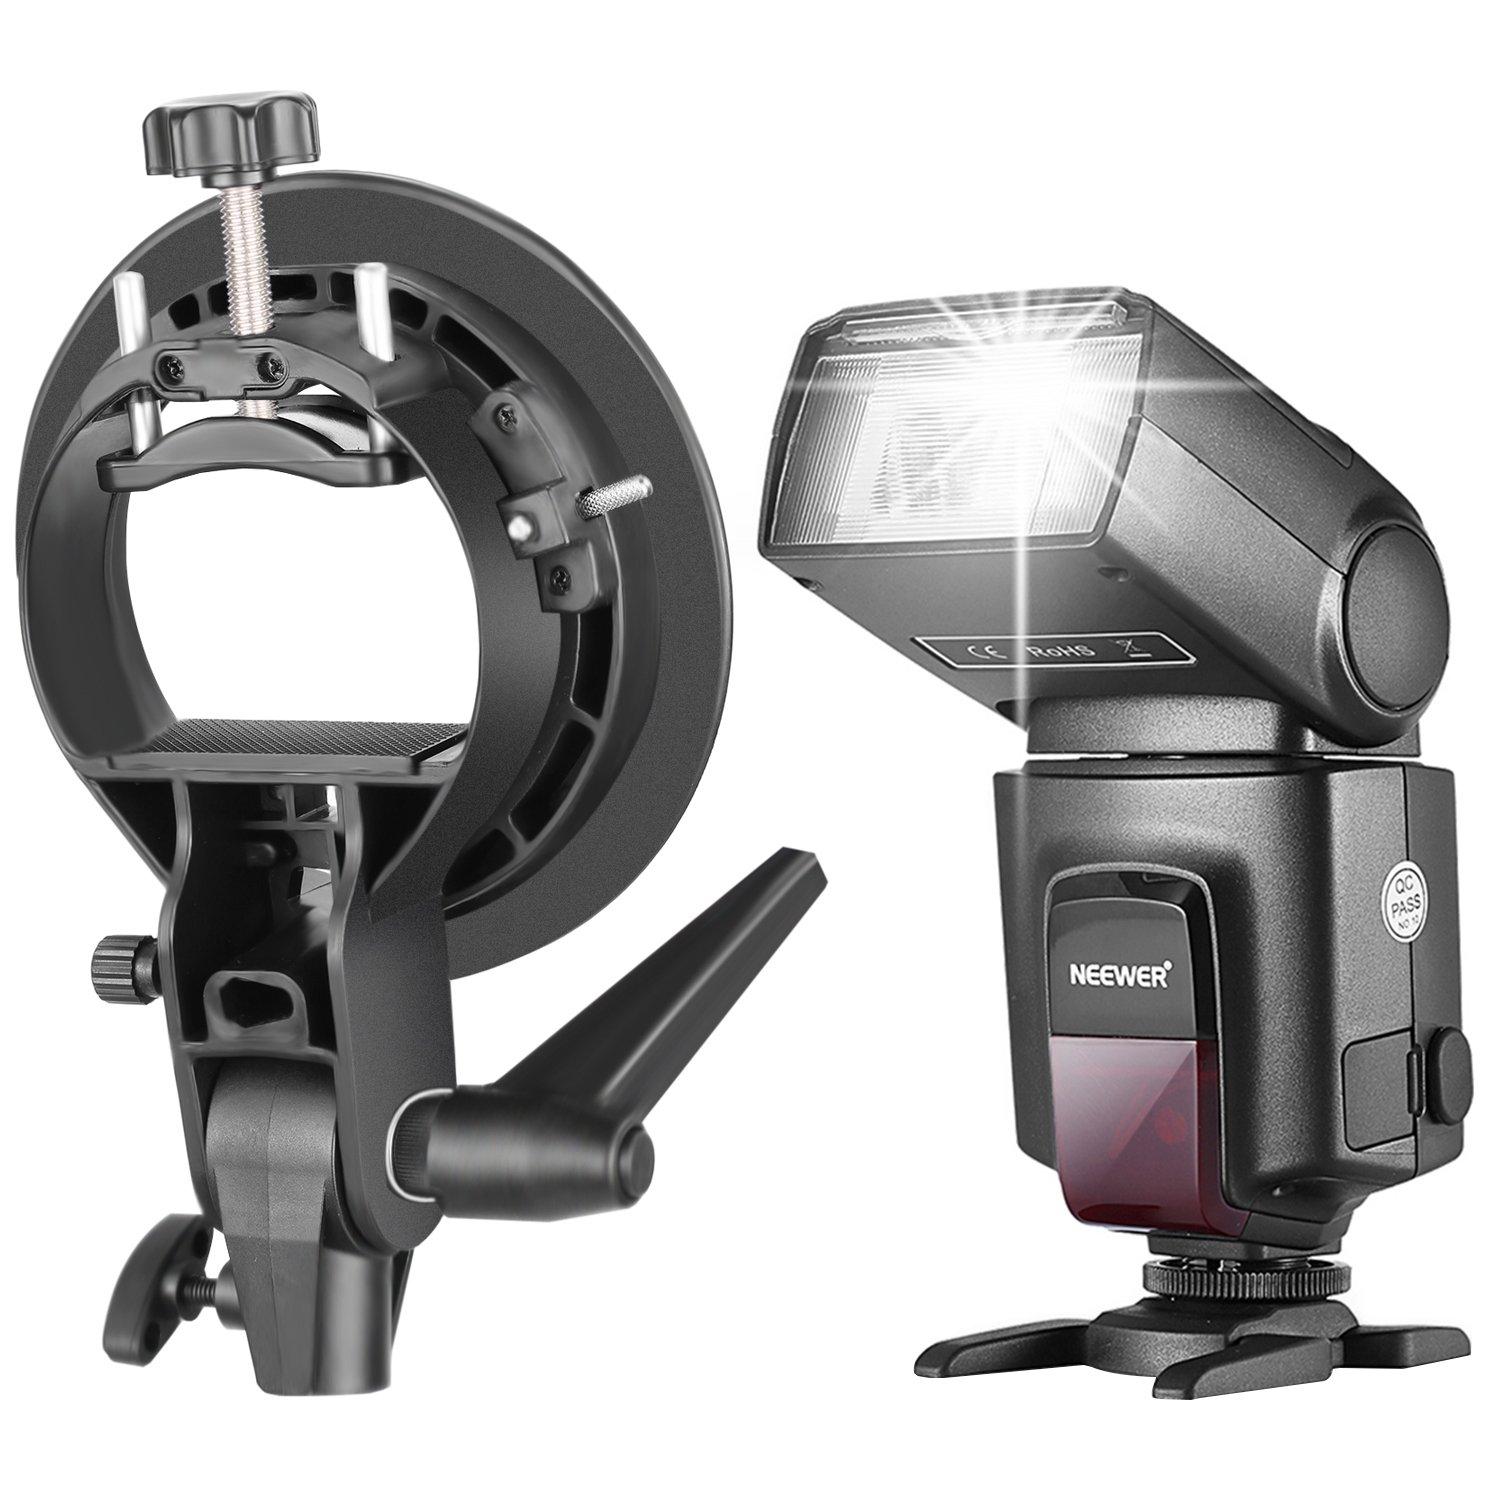 Neewer TT560 Flash Speedlite with S-Type Bracket Holder of Bowens Mount for Canon Nikon Panasonic Olympus Pentax and DSLR Cameras with Standard Hot Shoe, Softbox Beauty Dish Reflector Umbrella by Neewer